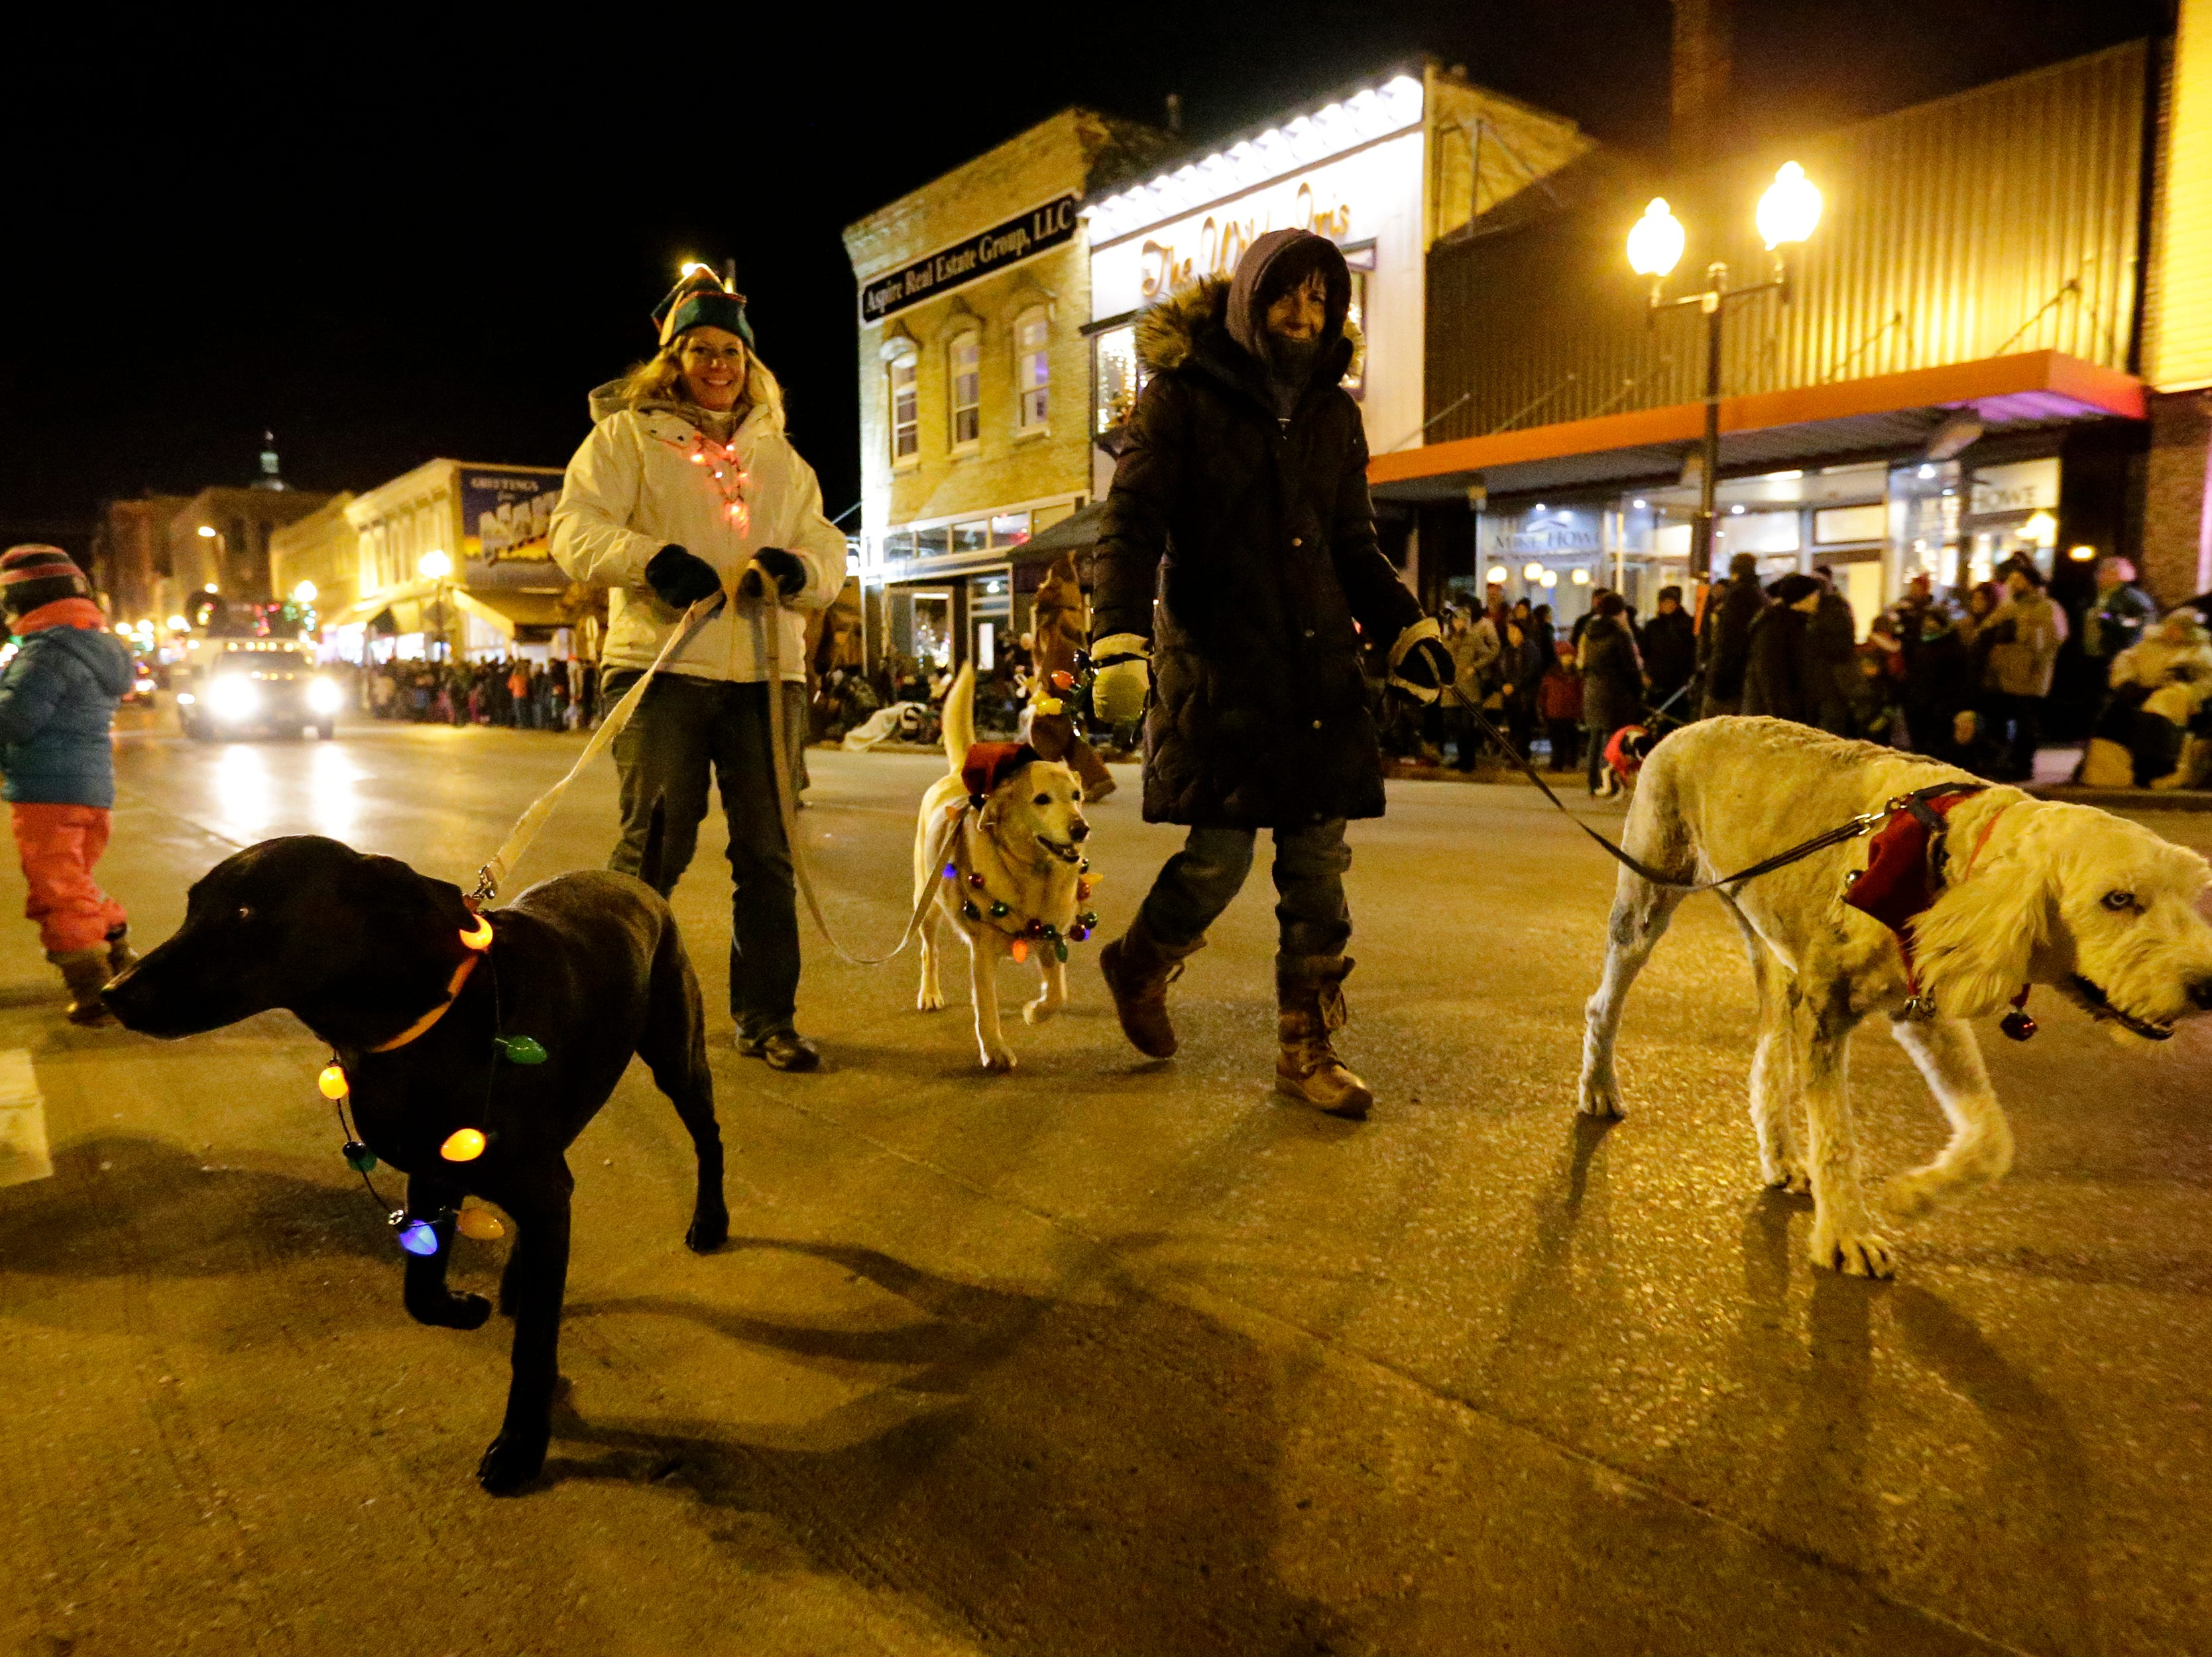 """Dogs march in the 30th Annual Lakeshore Holiday Parade Wednesday, November 21, 2018, in Manitowoc, Wis. This year's theme was """"Christmas Through the Decades."""" Joshua Clark/USA TODAY NETWORK-Wisconsin"""